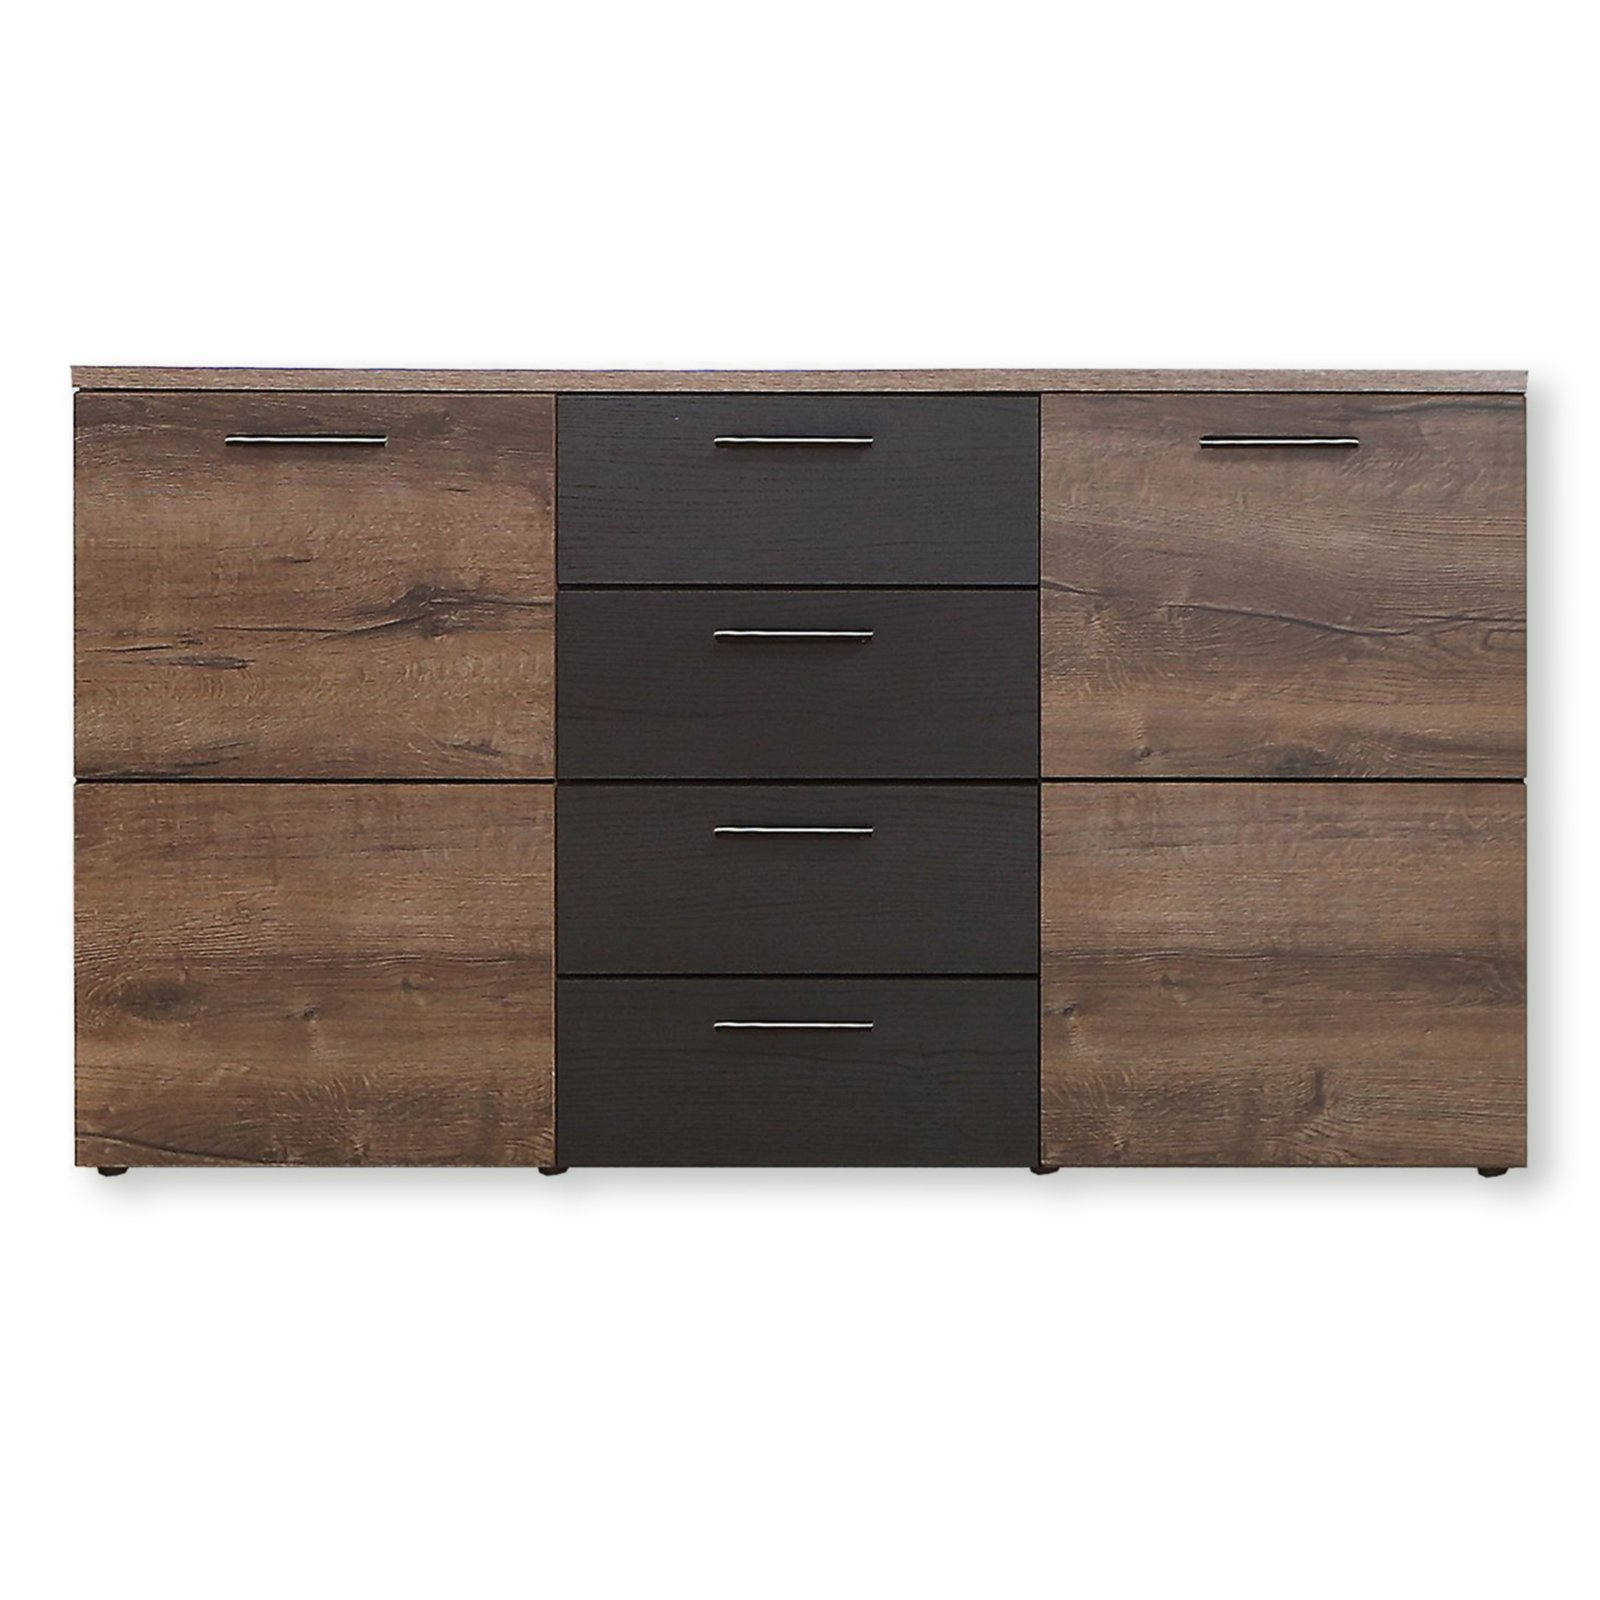 sideboard durango schlammeiche schwarzeiche 150 cm kommoden sideboards m bel roller. Black Bedroom Furniture Sets. Home Design Ideas